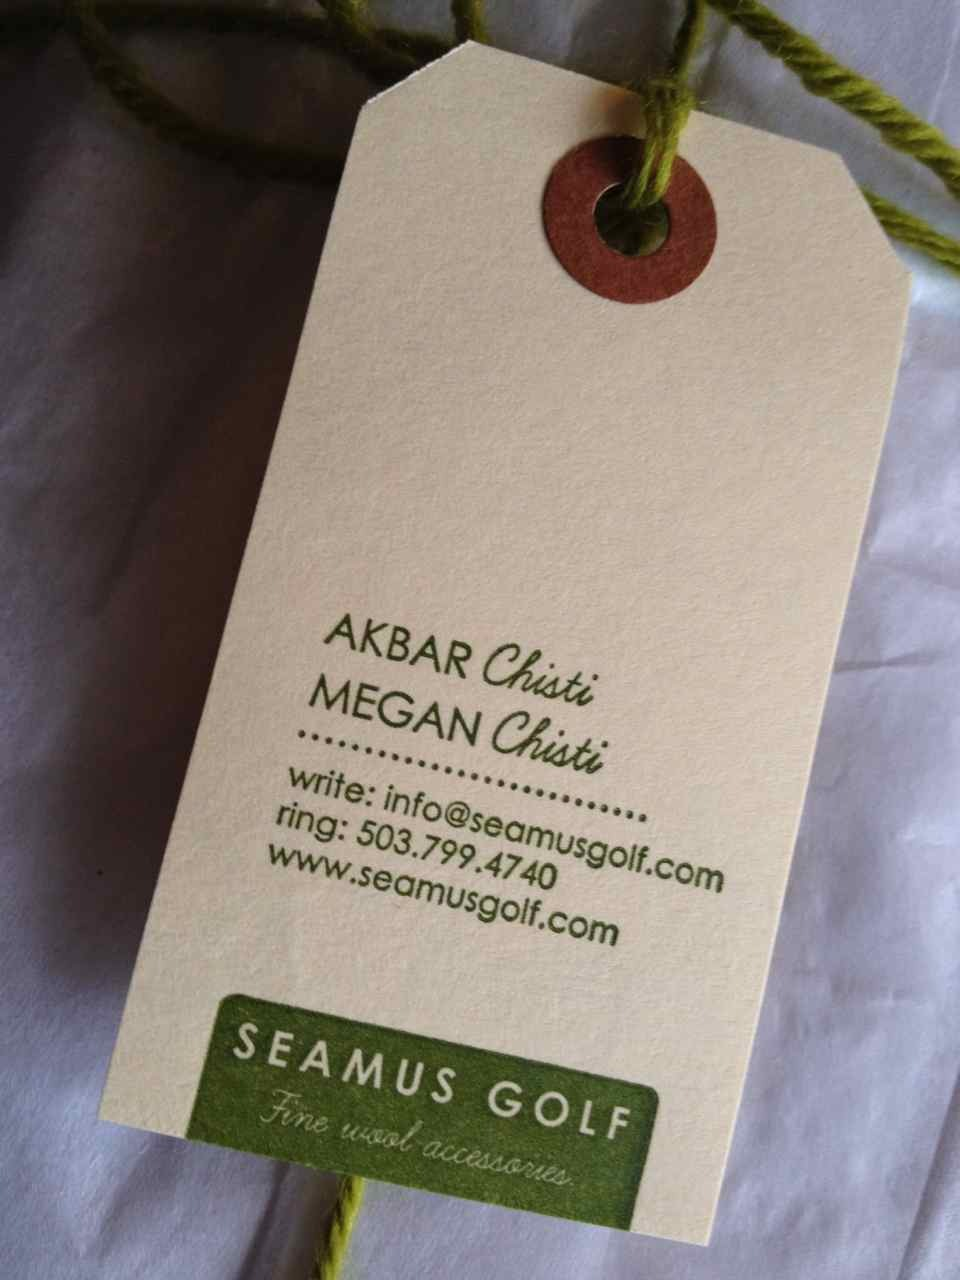 Seamus Golf business card - it's all in the details!